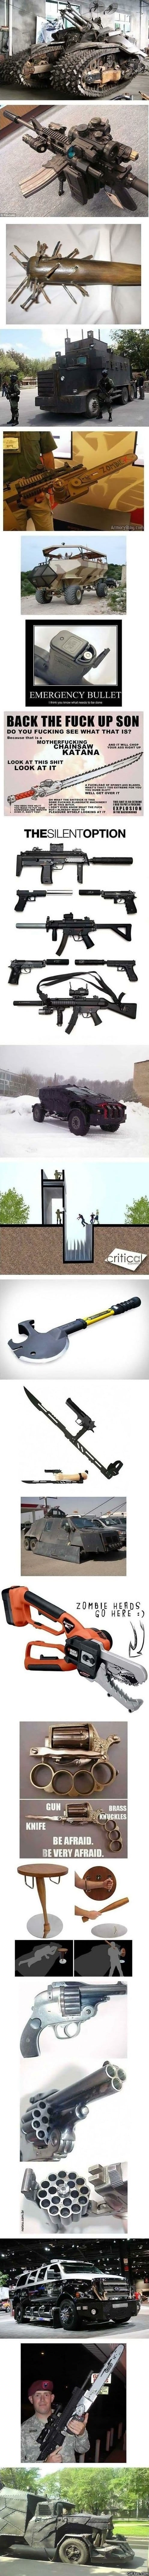 funny-everything-youll-need-for-a-zombie-apocalypse